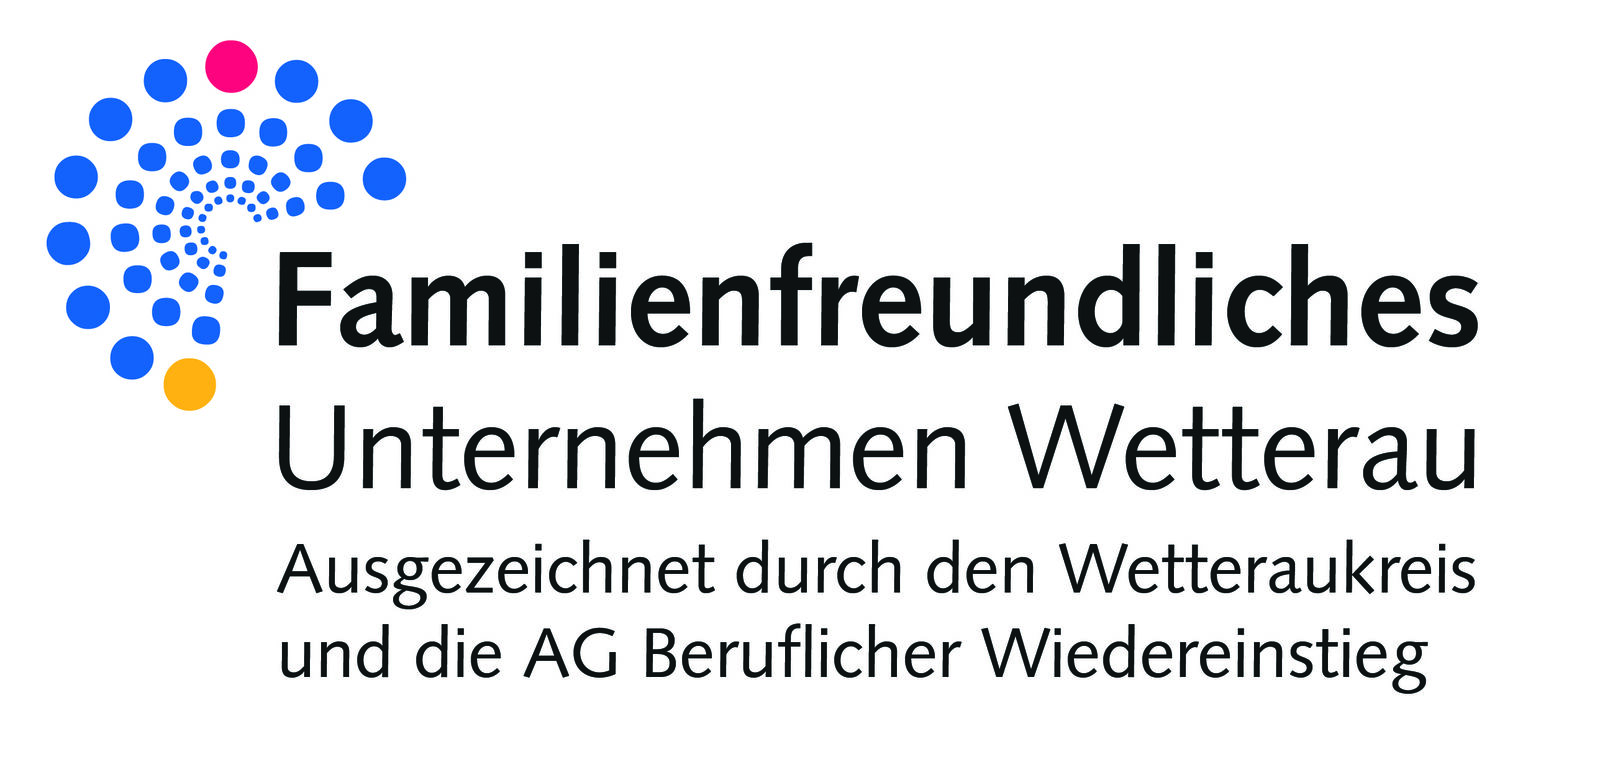 Marktanalyse und Kundenakquise (m/w/d) - Job Bad Vilbel - Karriere bei Brother